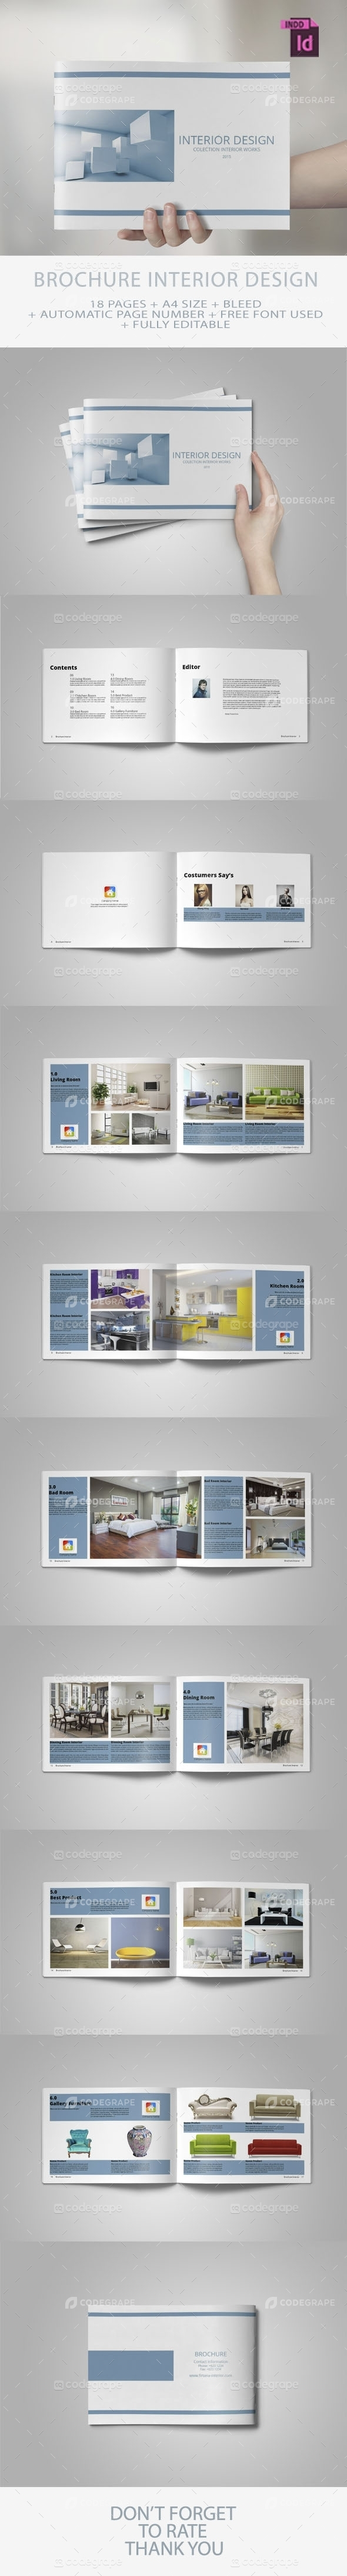 Brochure Interior Design